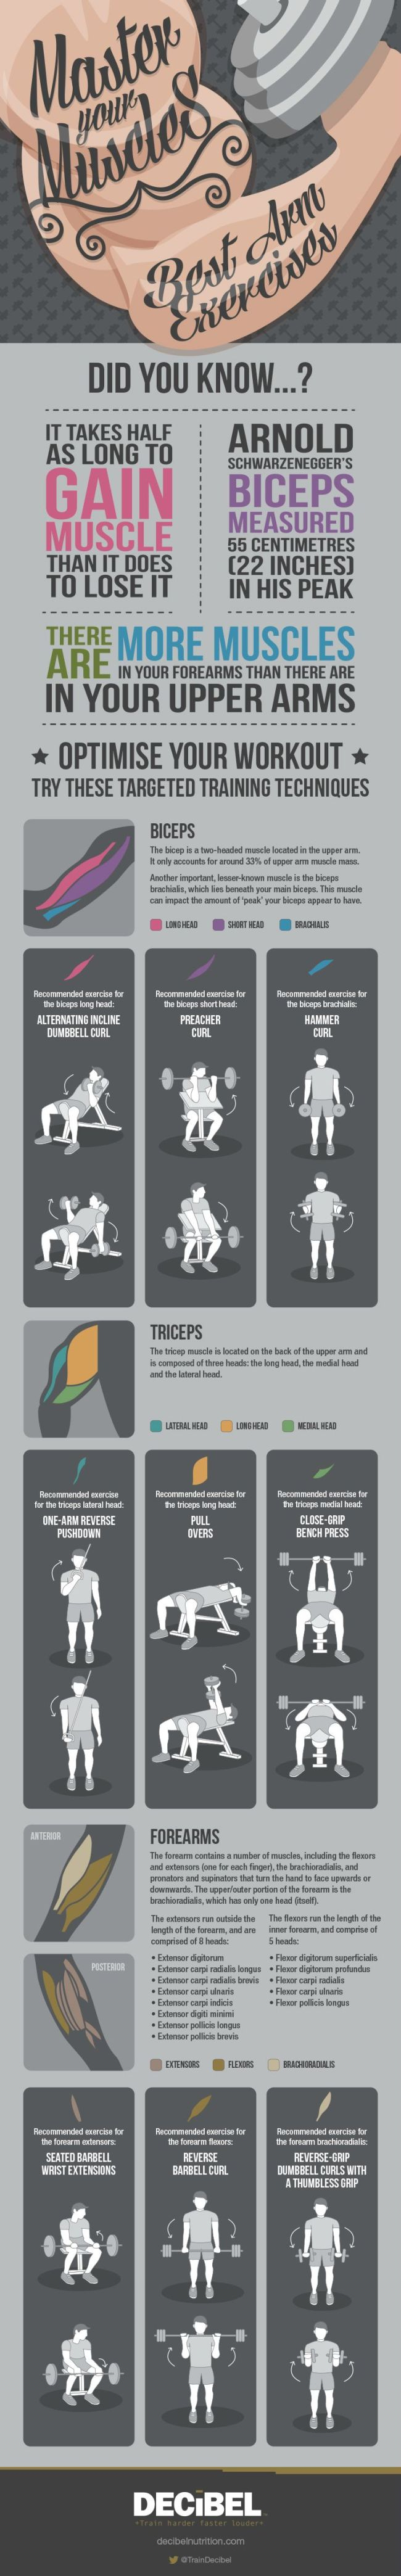 Master Your Muscles (infographic)